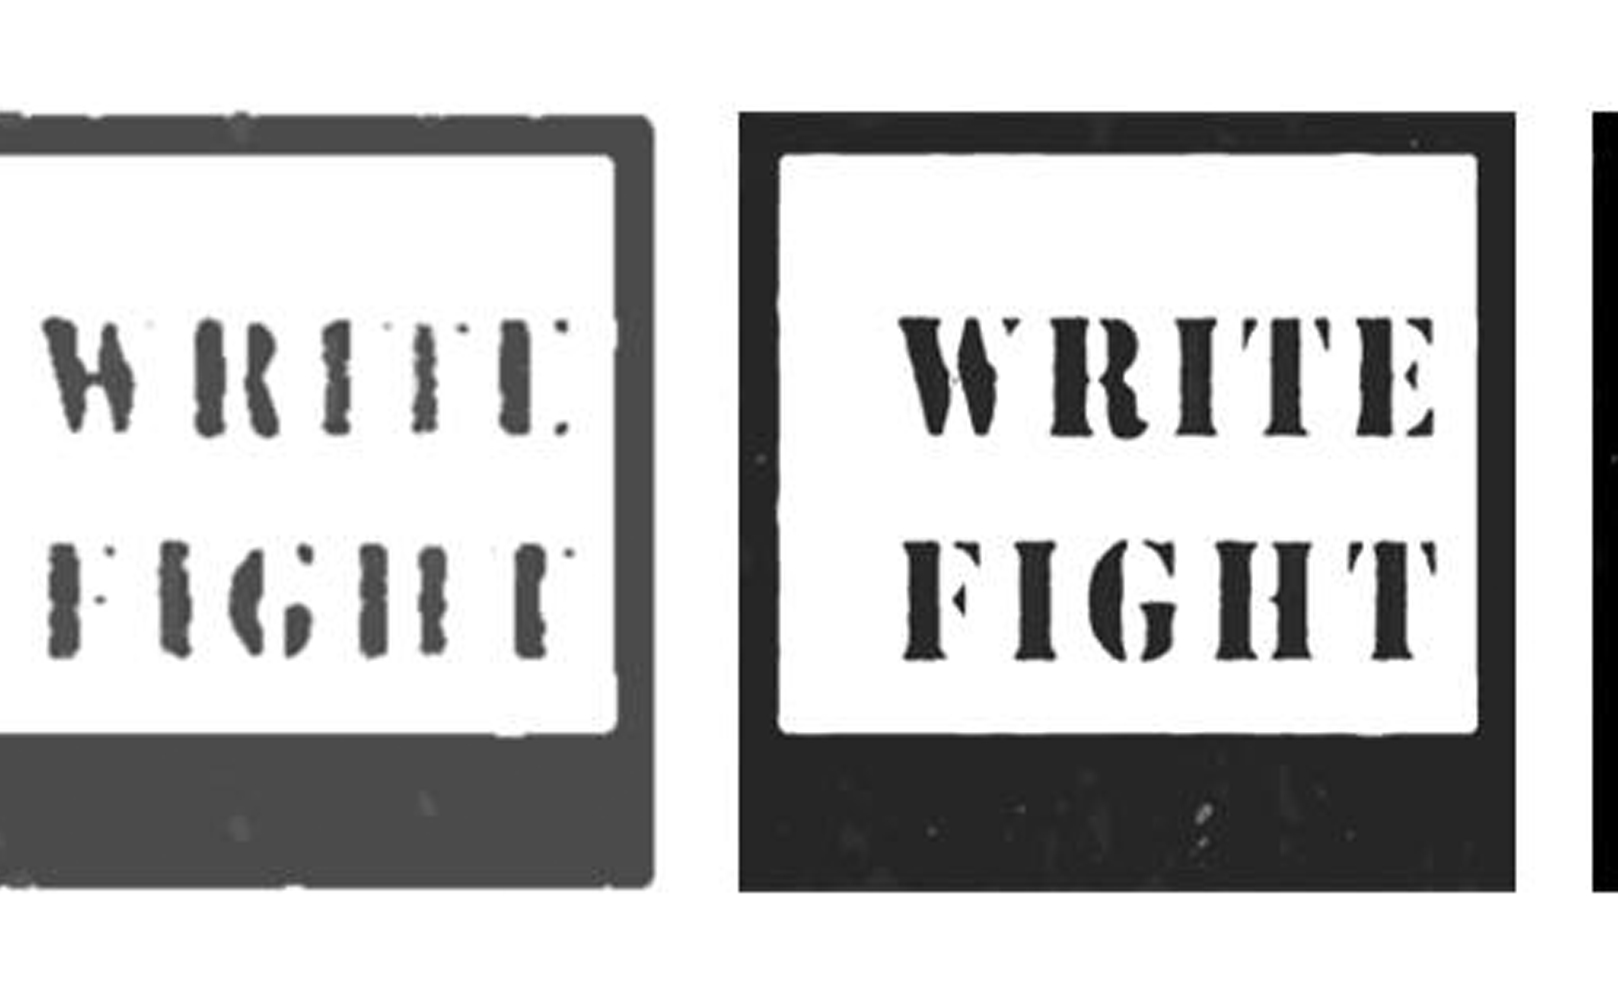 WRITE FIGHT I